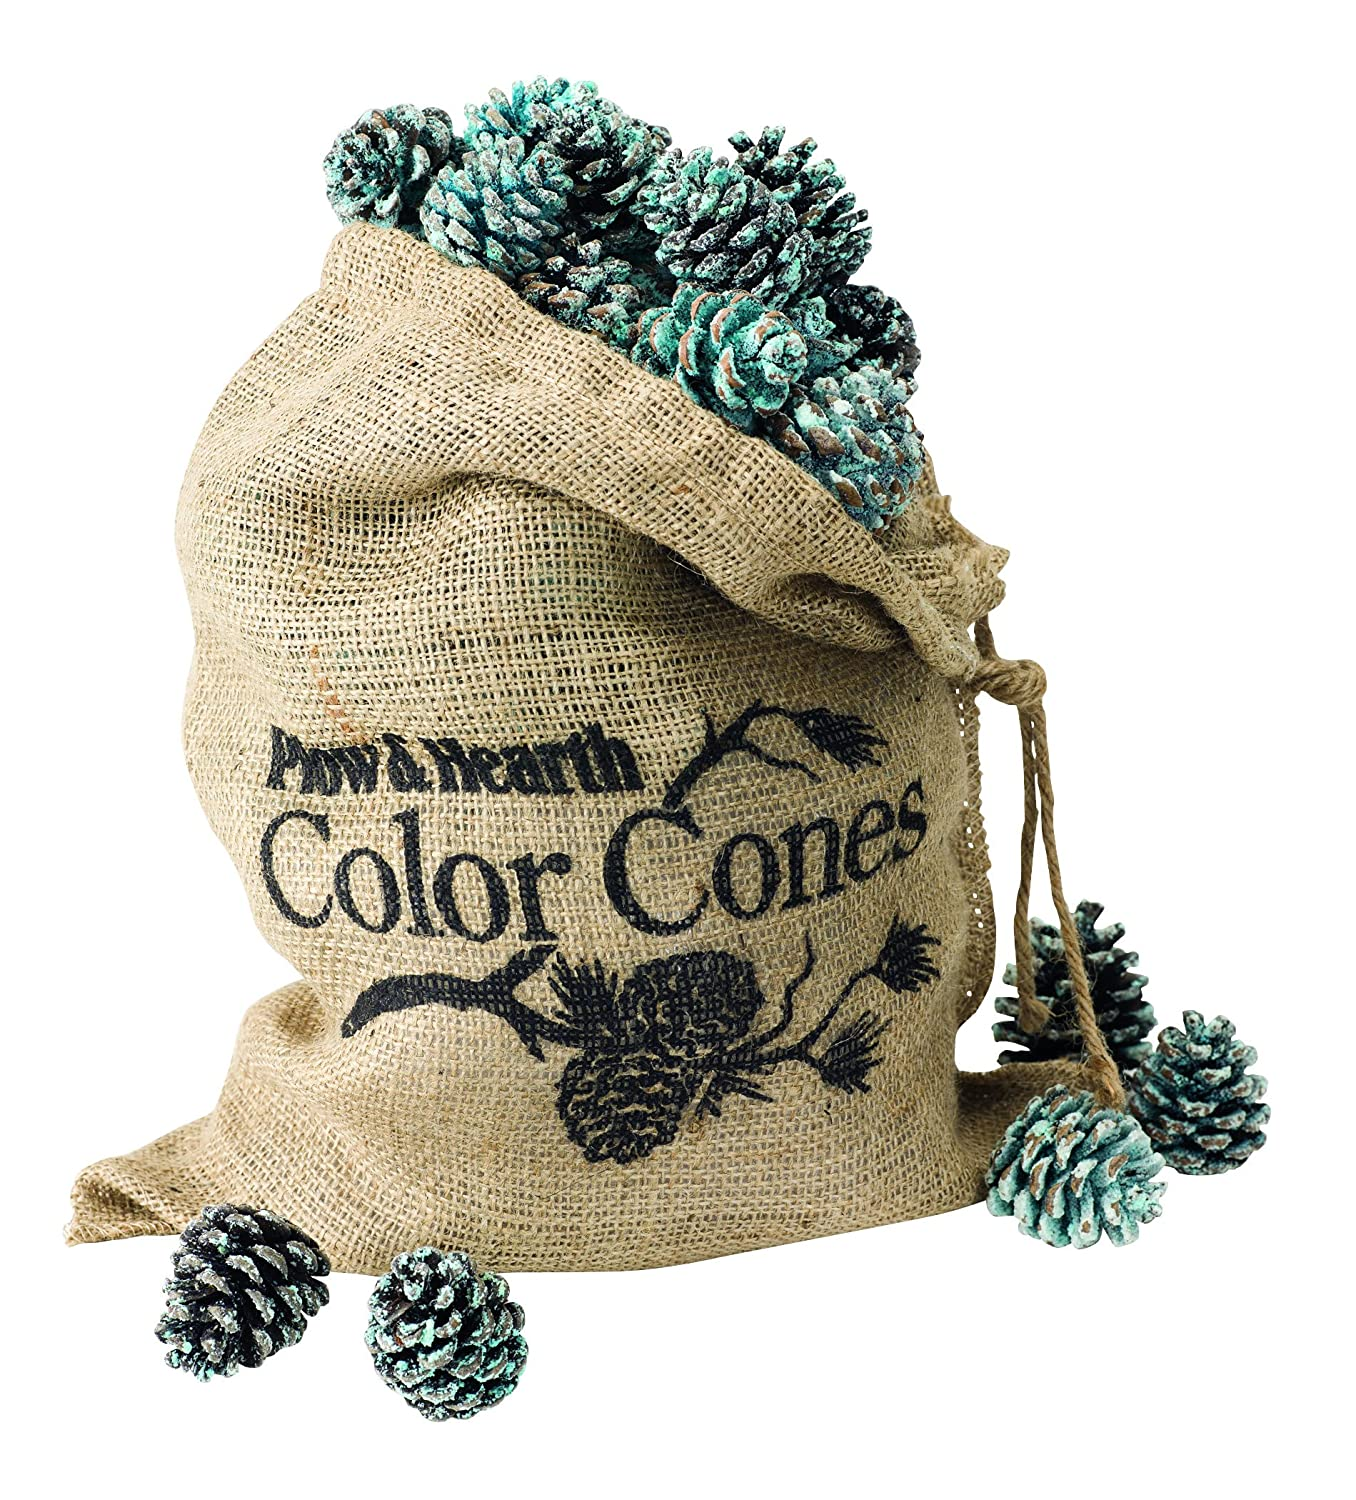 Fireplace Color Cones, Festive Fun Rainbow Flame Changing Pine Cones, Fire Pit Campfire Hearth Wood Burning Accessories for Holidays or Anytime - 2 LB Refill Bag